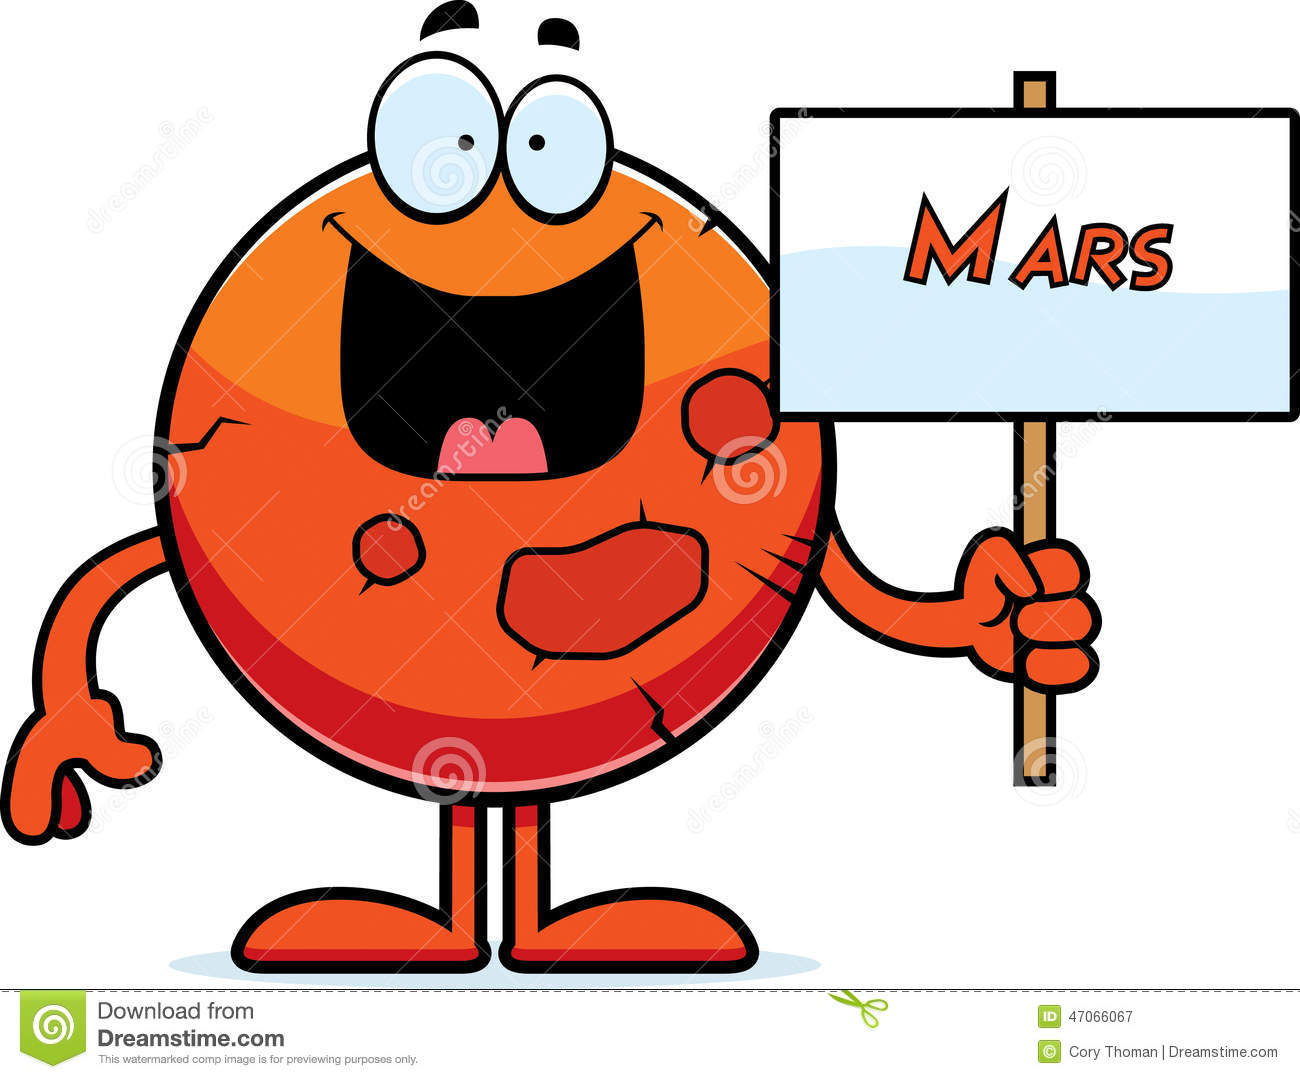 cartoon illustration of the planet Mars holding a sign.